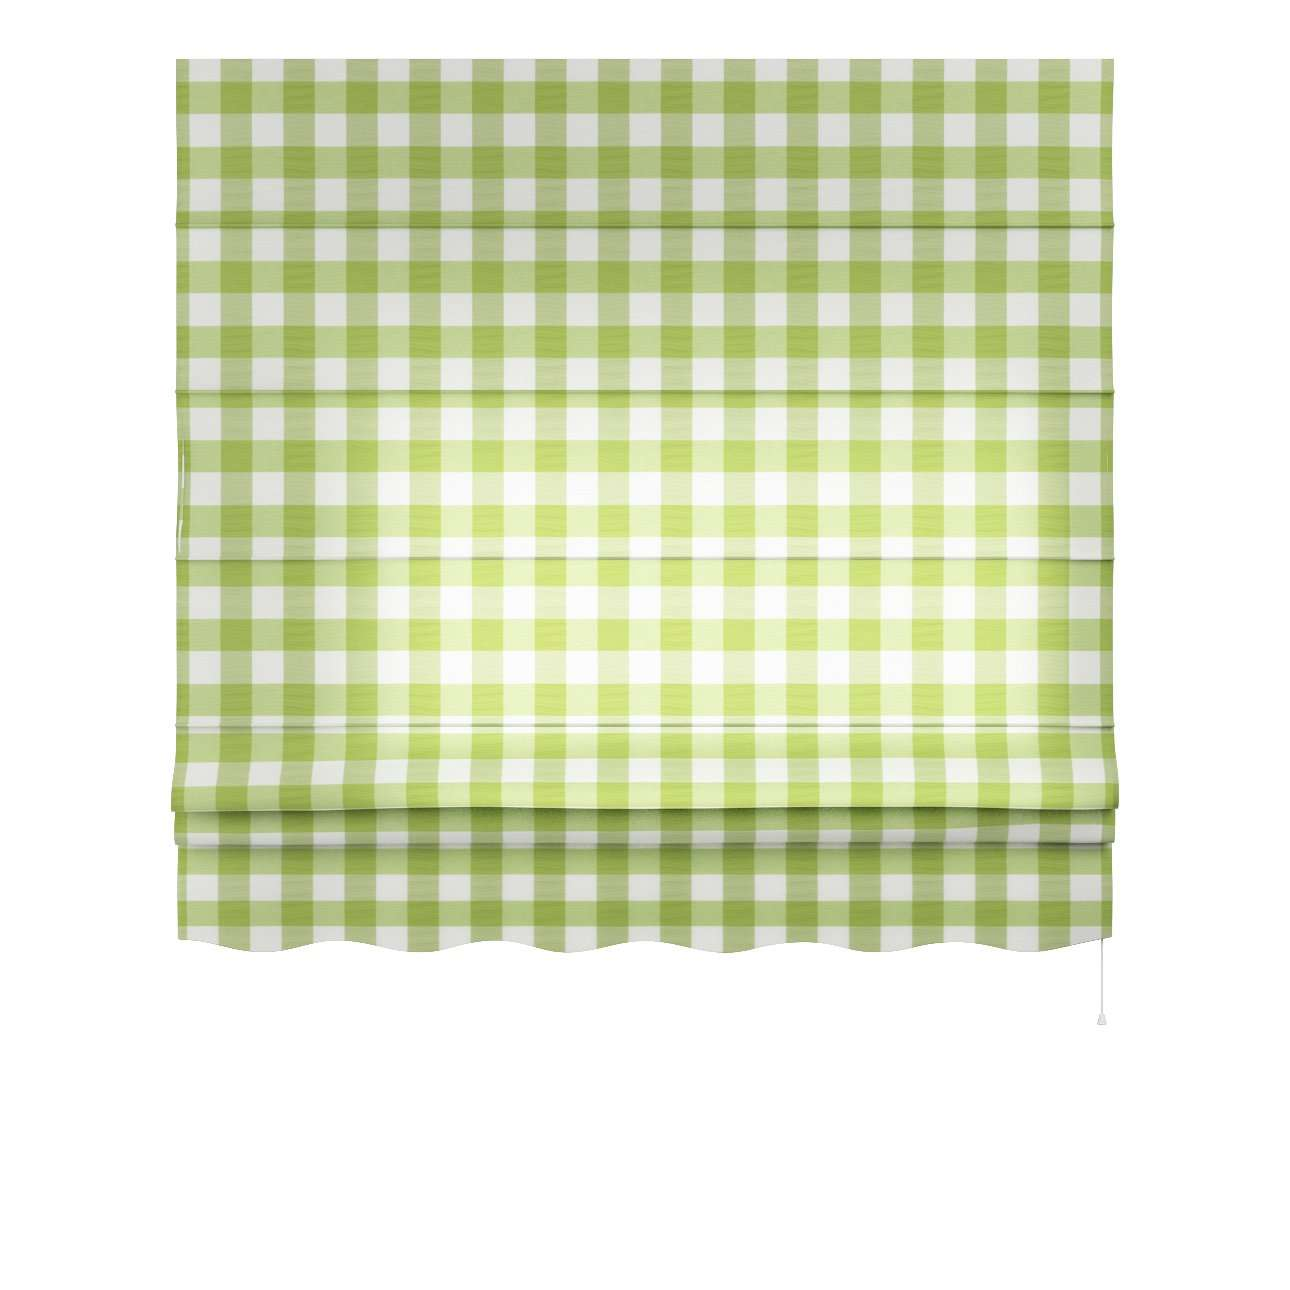 Florence roman blind  80 × 170 cm (31.5 × 67 inch) in collection Quadro, fabric: 136-36